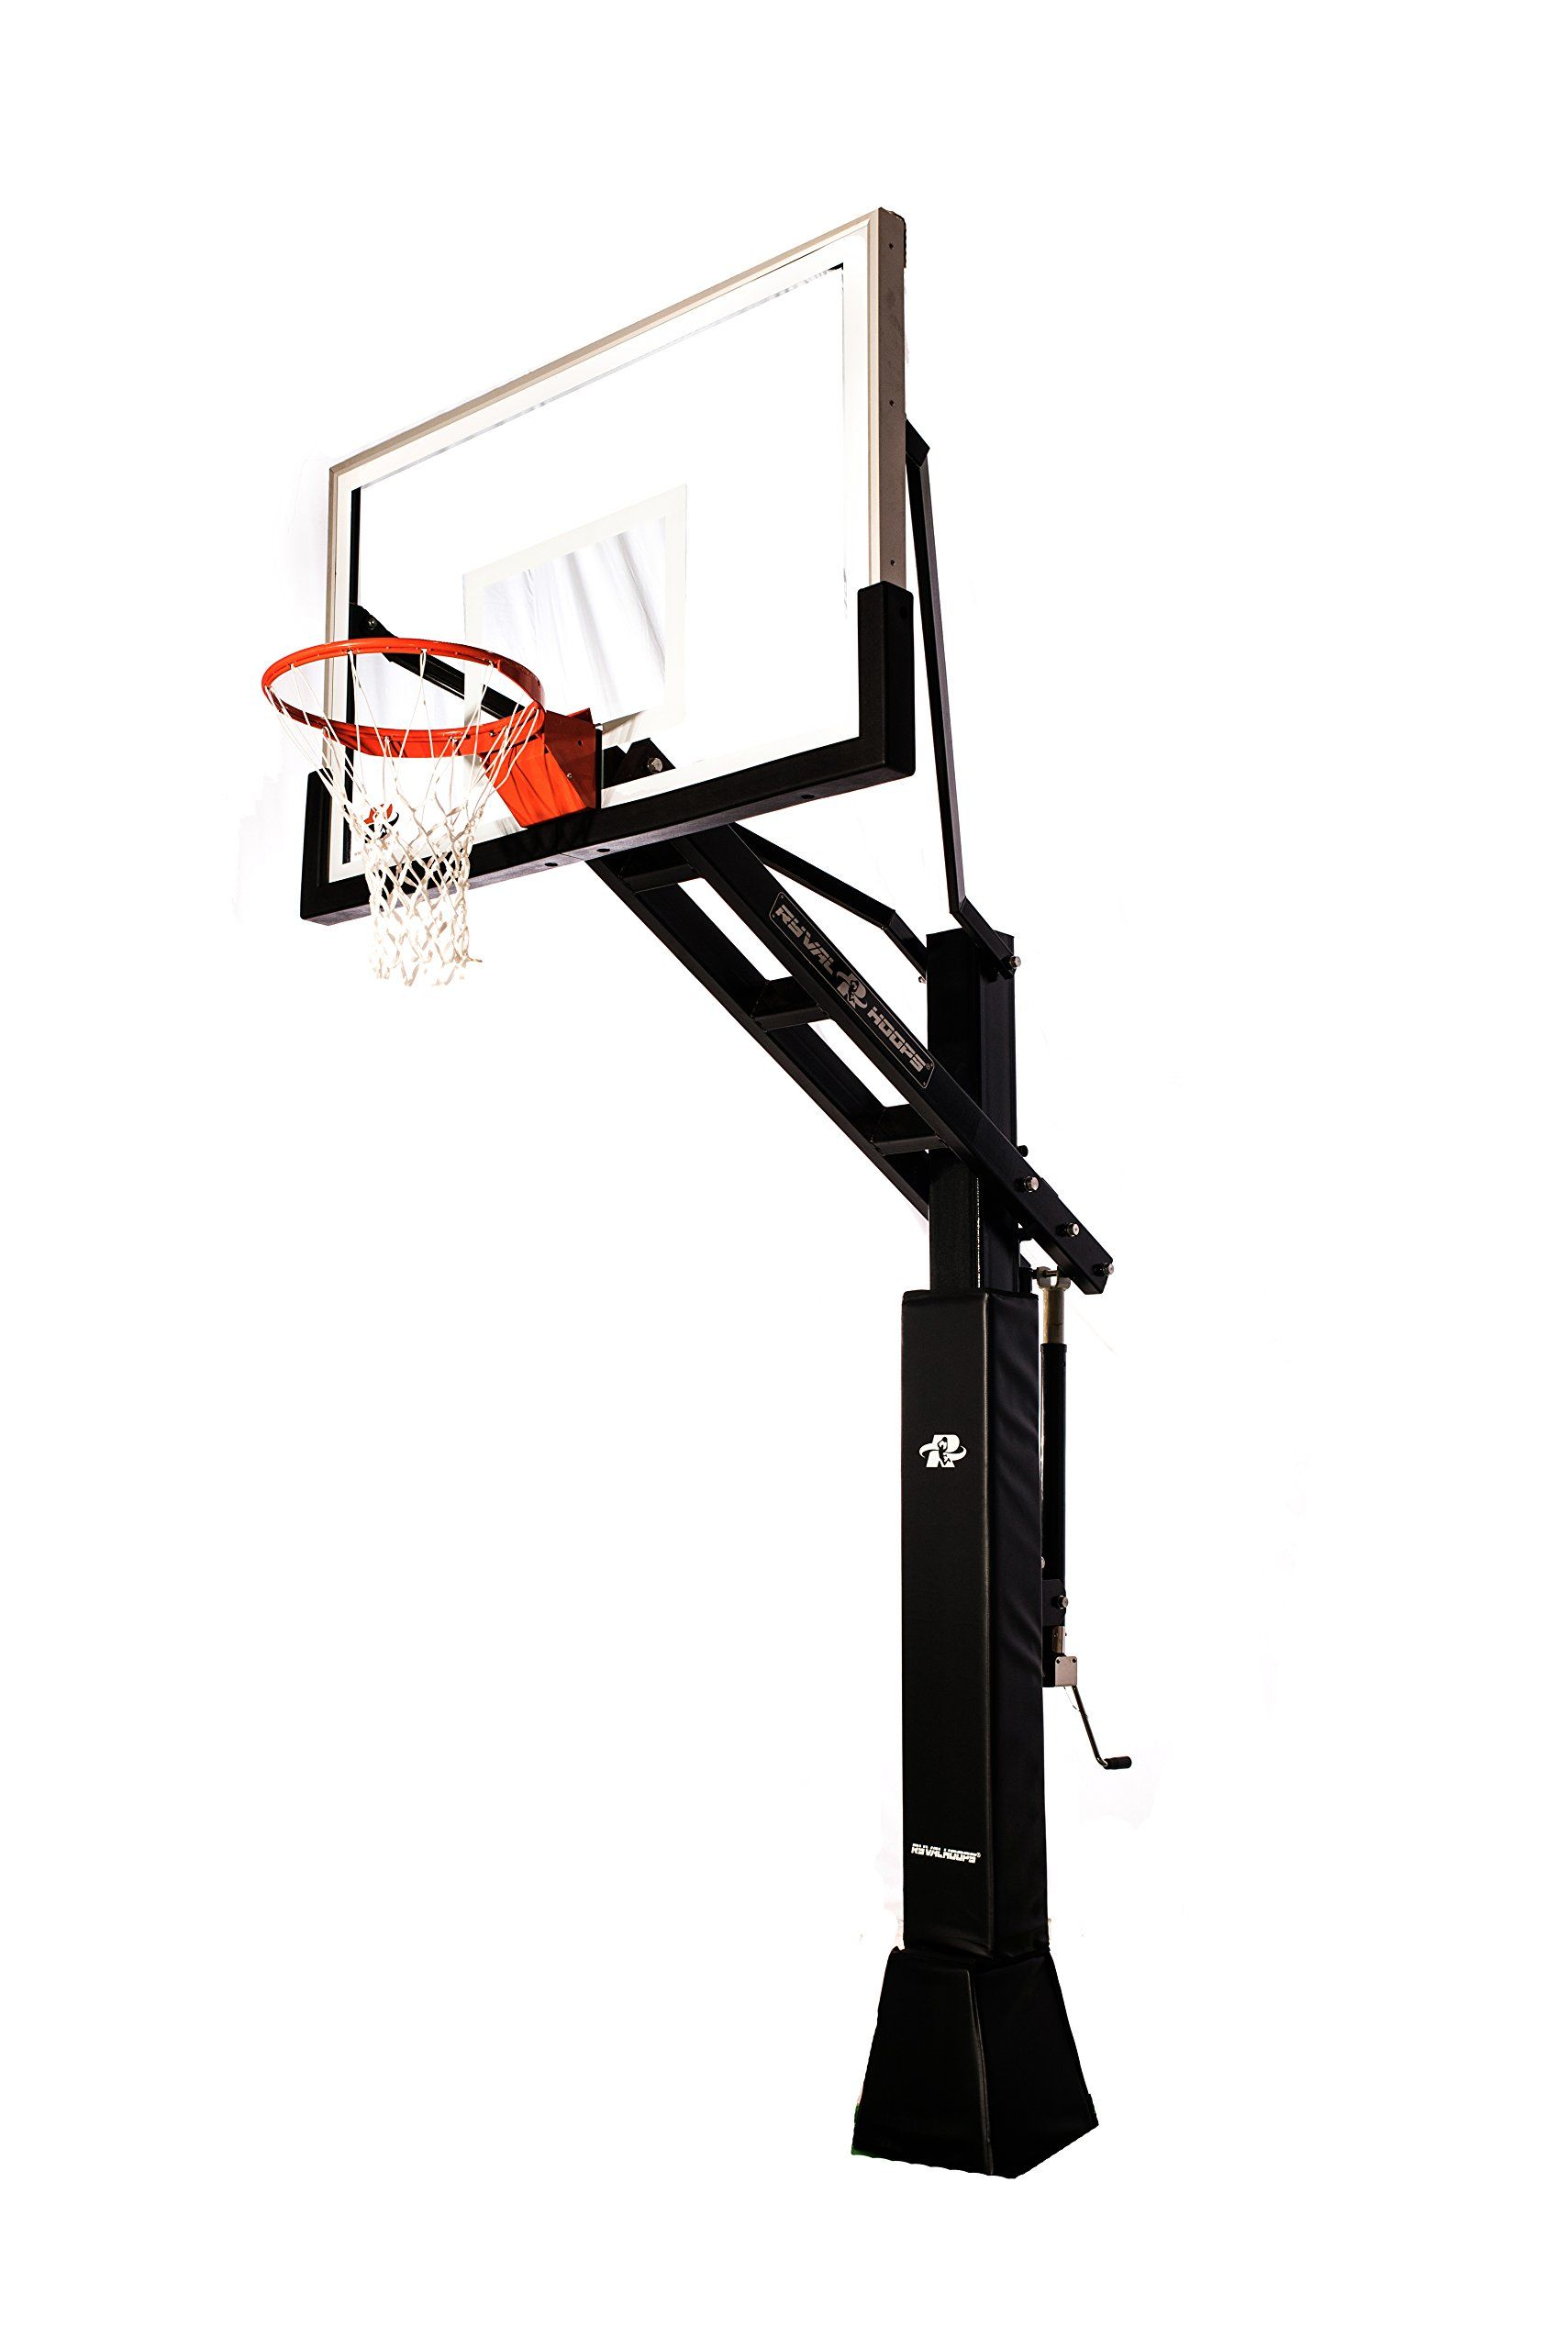 Ryval C660 Basketball Hoop 60 Clear View Tempered Glass Backboard Height Adjustable For Ch In Ground Basketball Goal Home Basketball Court Basketball Hoop